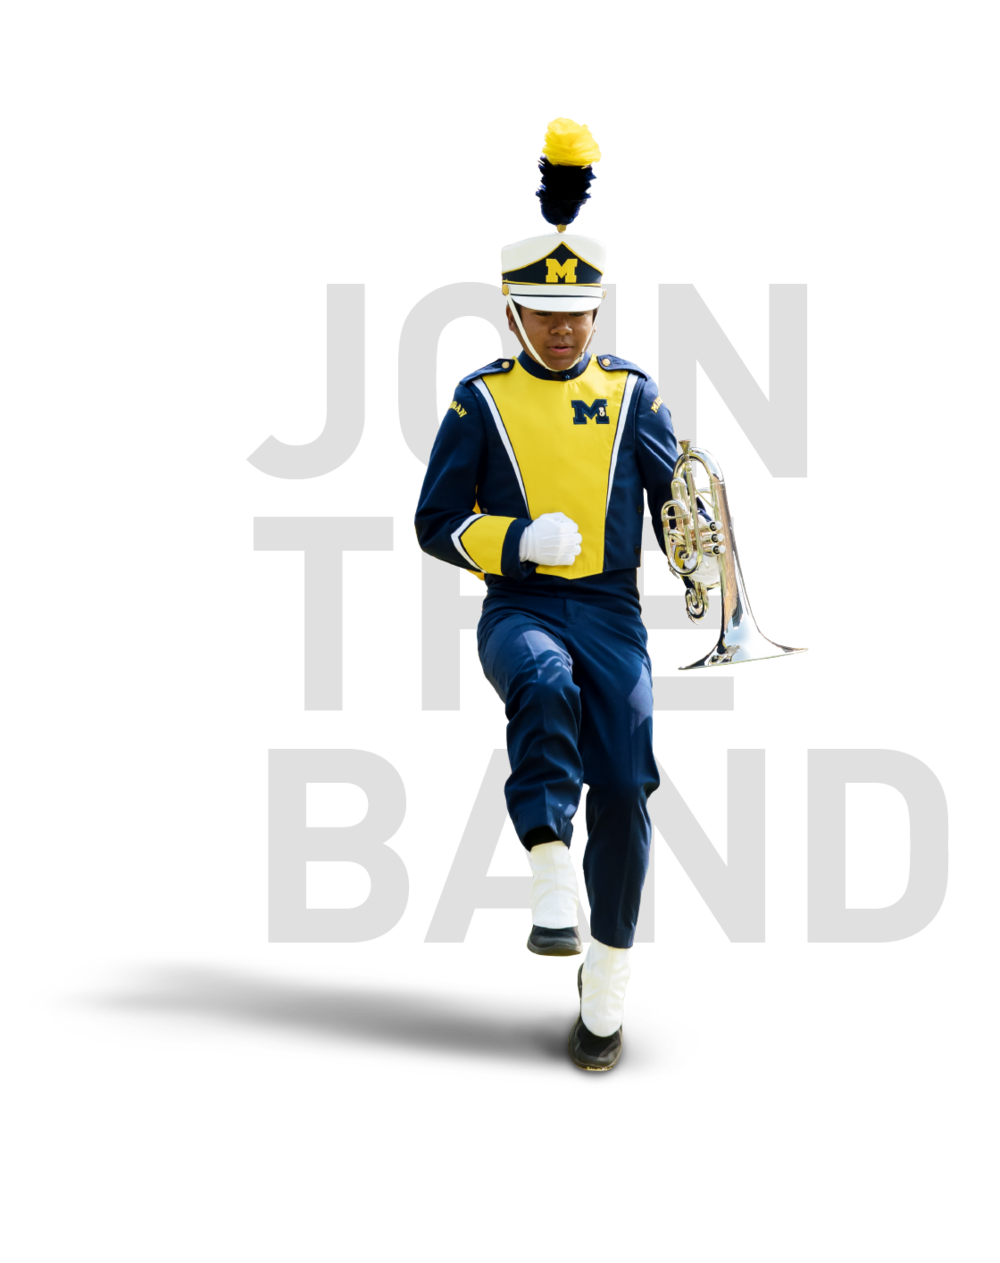 JOIN THE BAND - The Michigan Marching Band is open to all UM students including Dearborn and Flint. If you are a transfer student or current UM student as well as an incoming freshman you are welcome to audition for the Band.